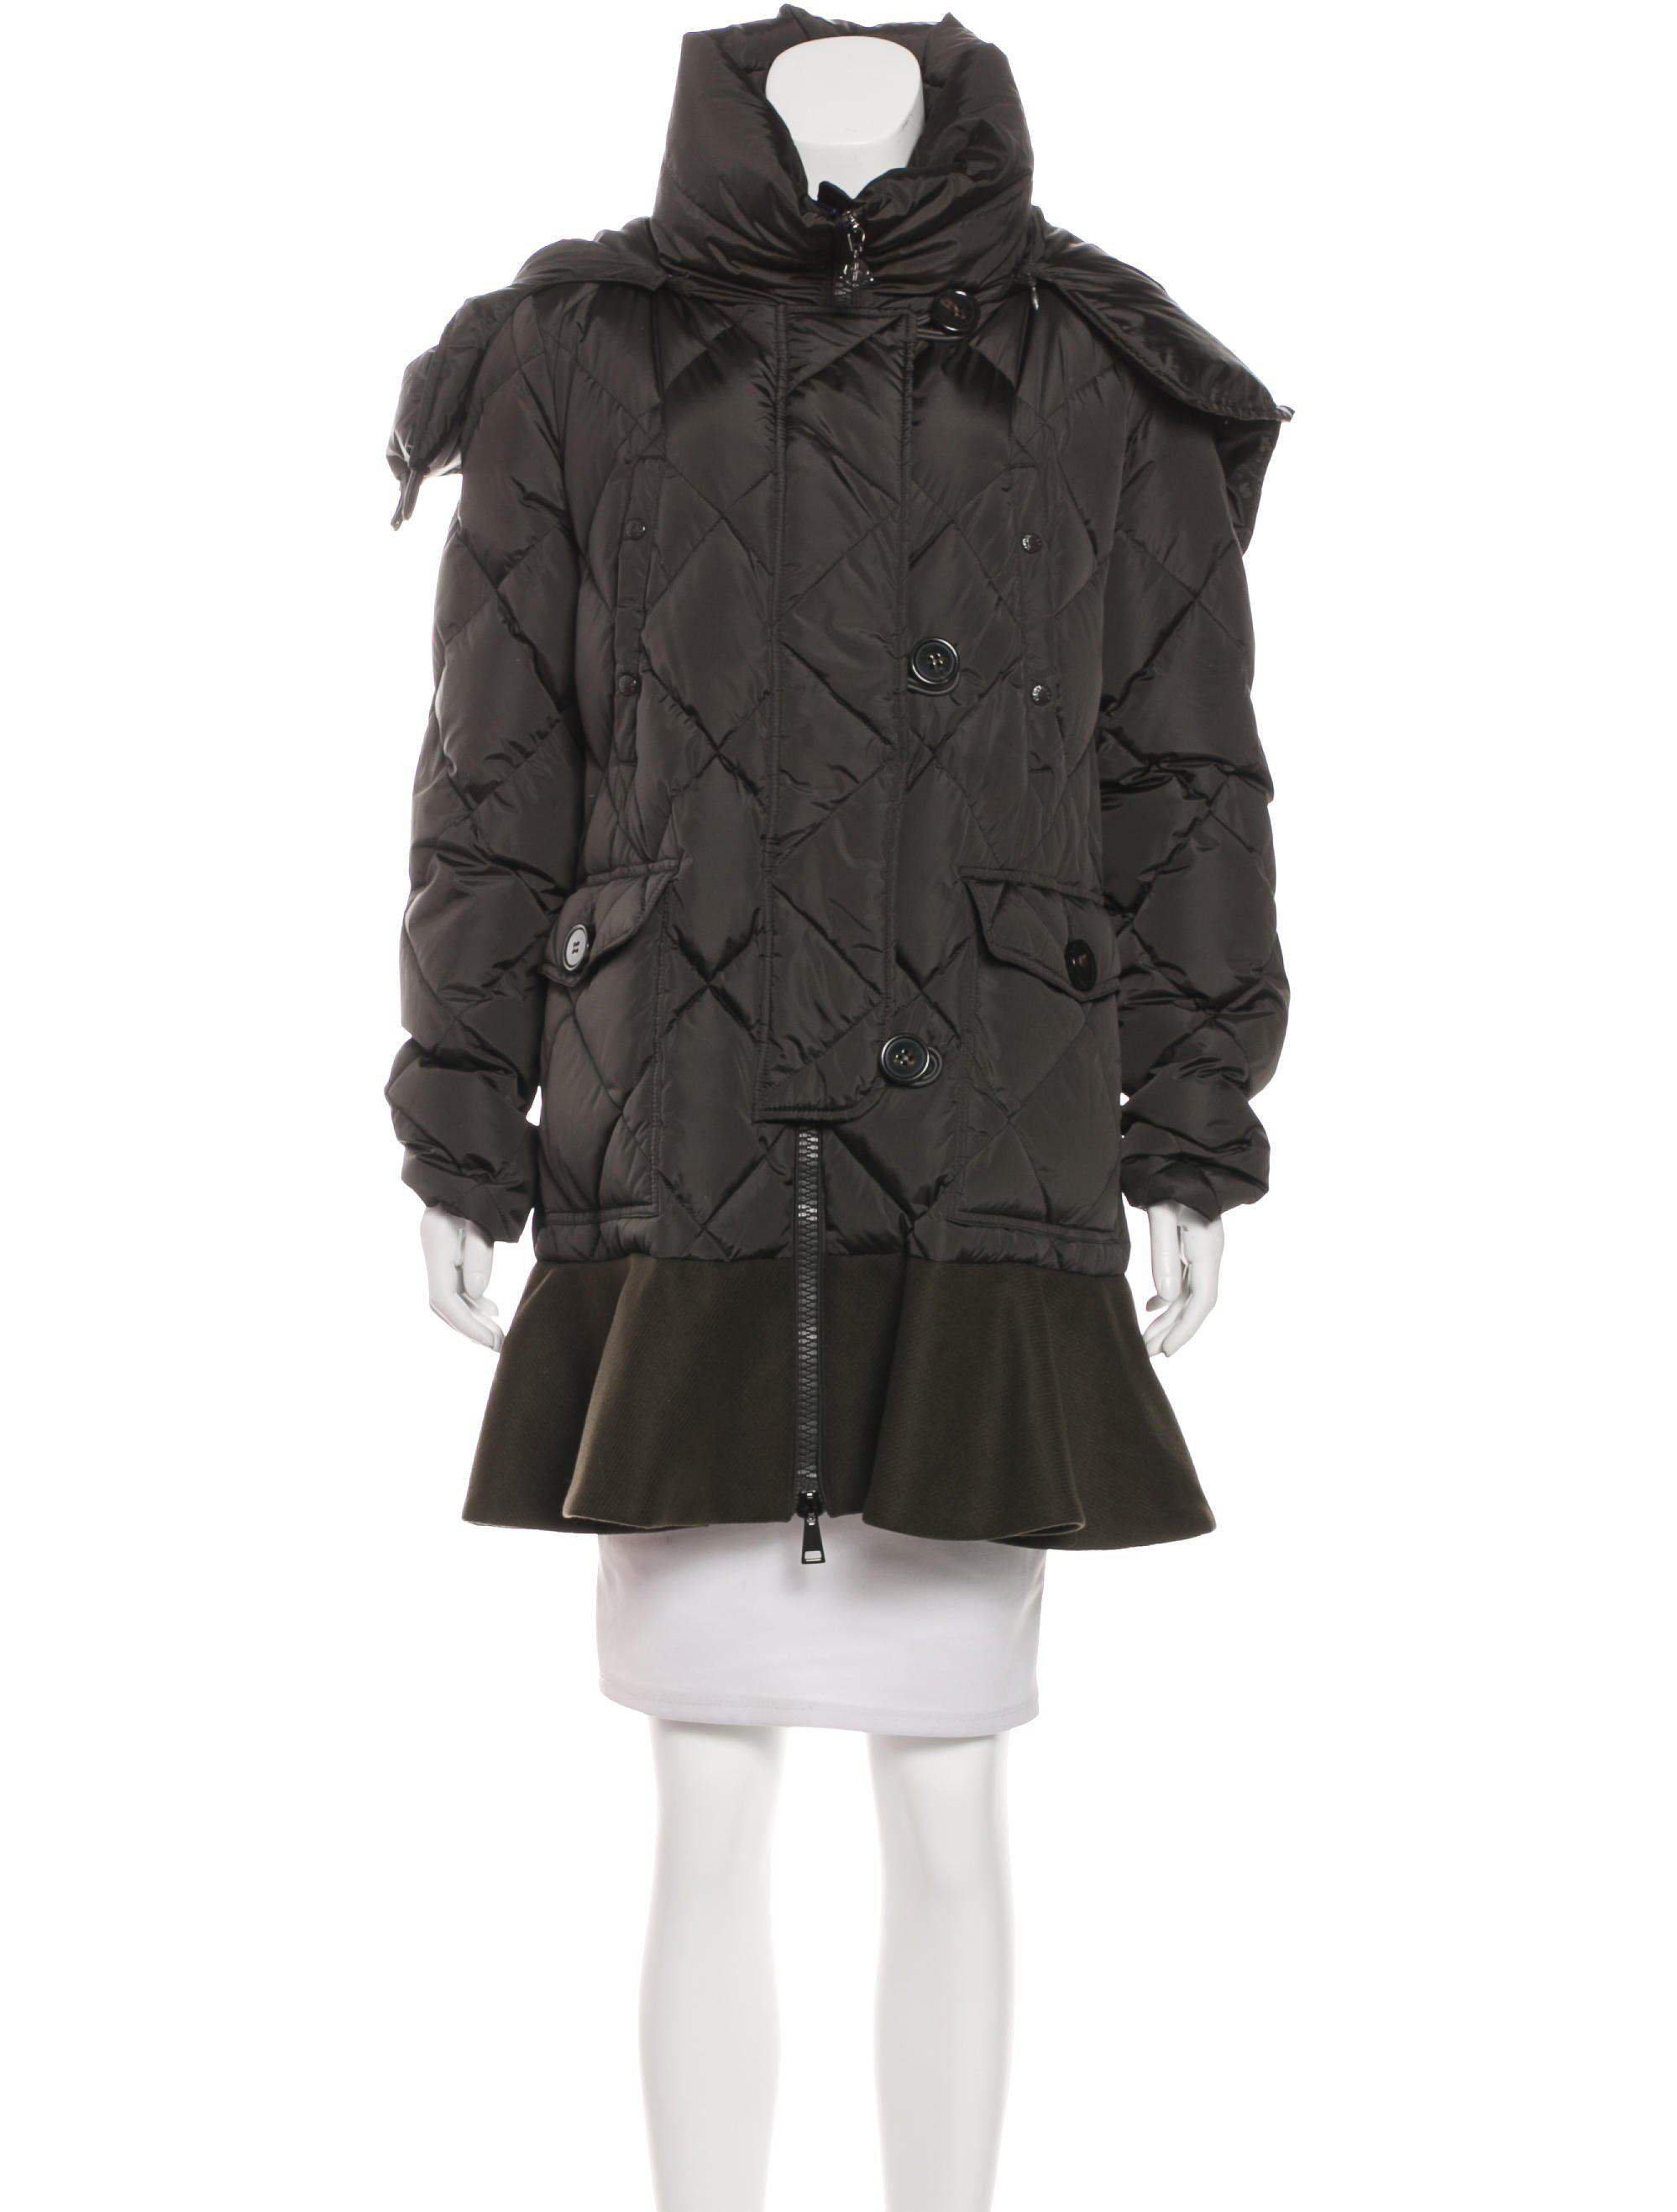 ecedc280df8e coupon for moncler vauloge coat cost 587c8 89790